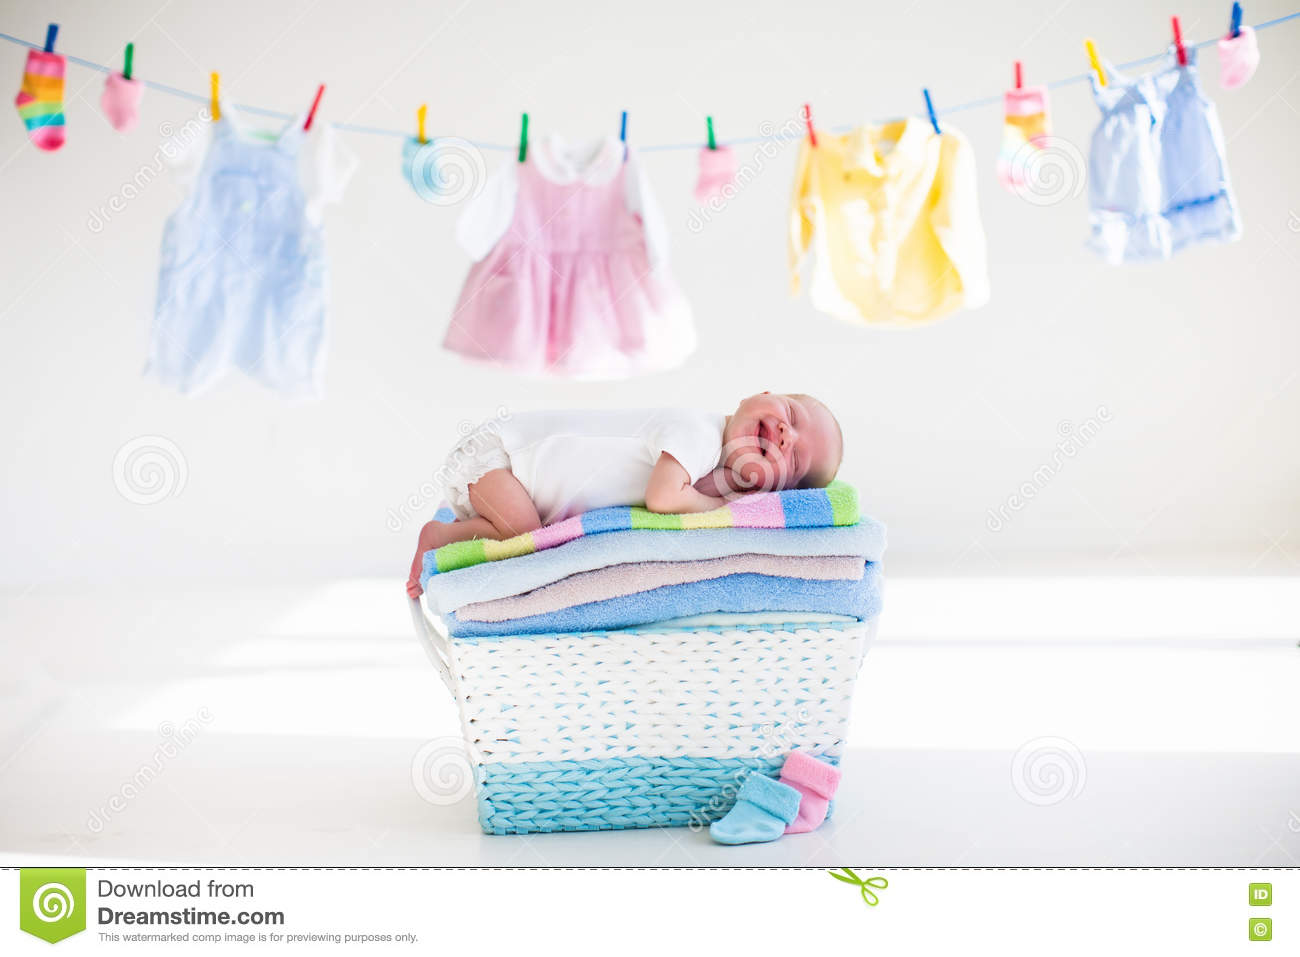 337dbbfa1660 Newborn Baby In A Basket With Towels Stock Image - Image of nursery ...